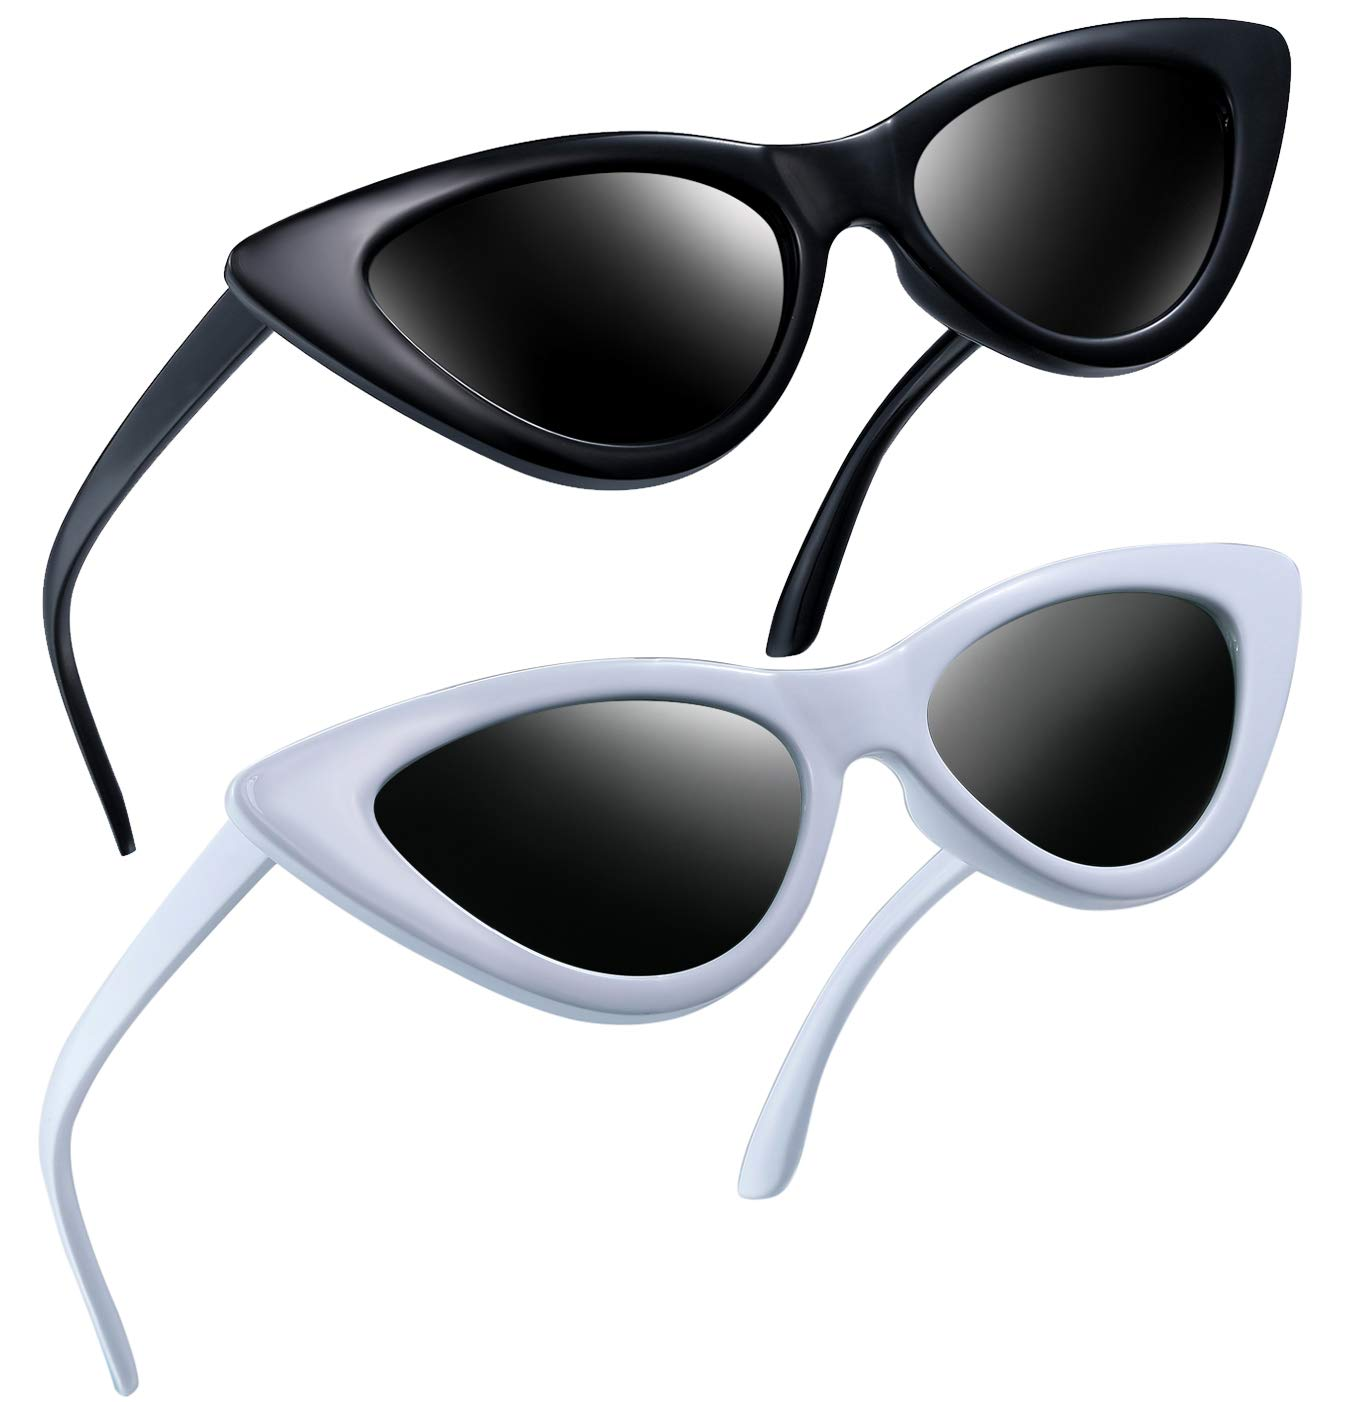 Joopin Vintage Polarized Cat Eye Sunglasses - Women Retro Cateye Sun Glasses Pointy Sunglasses E8908 (Black+White) by Joopin